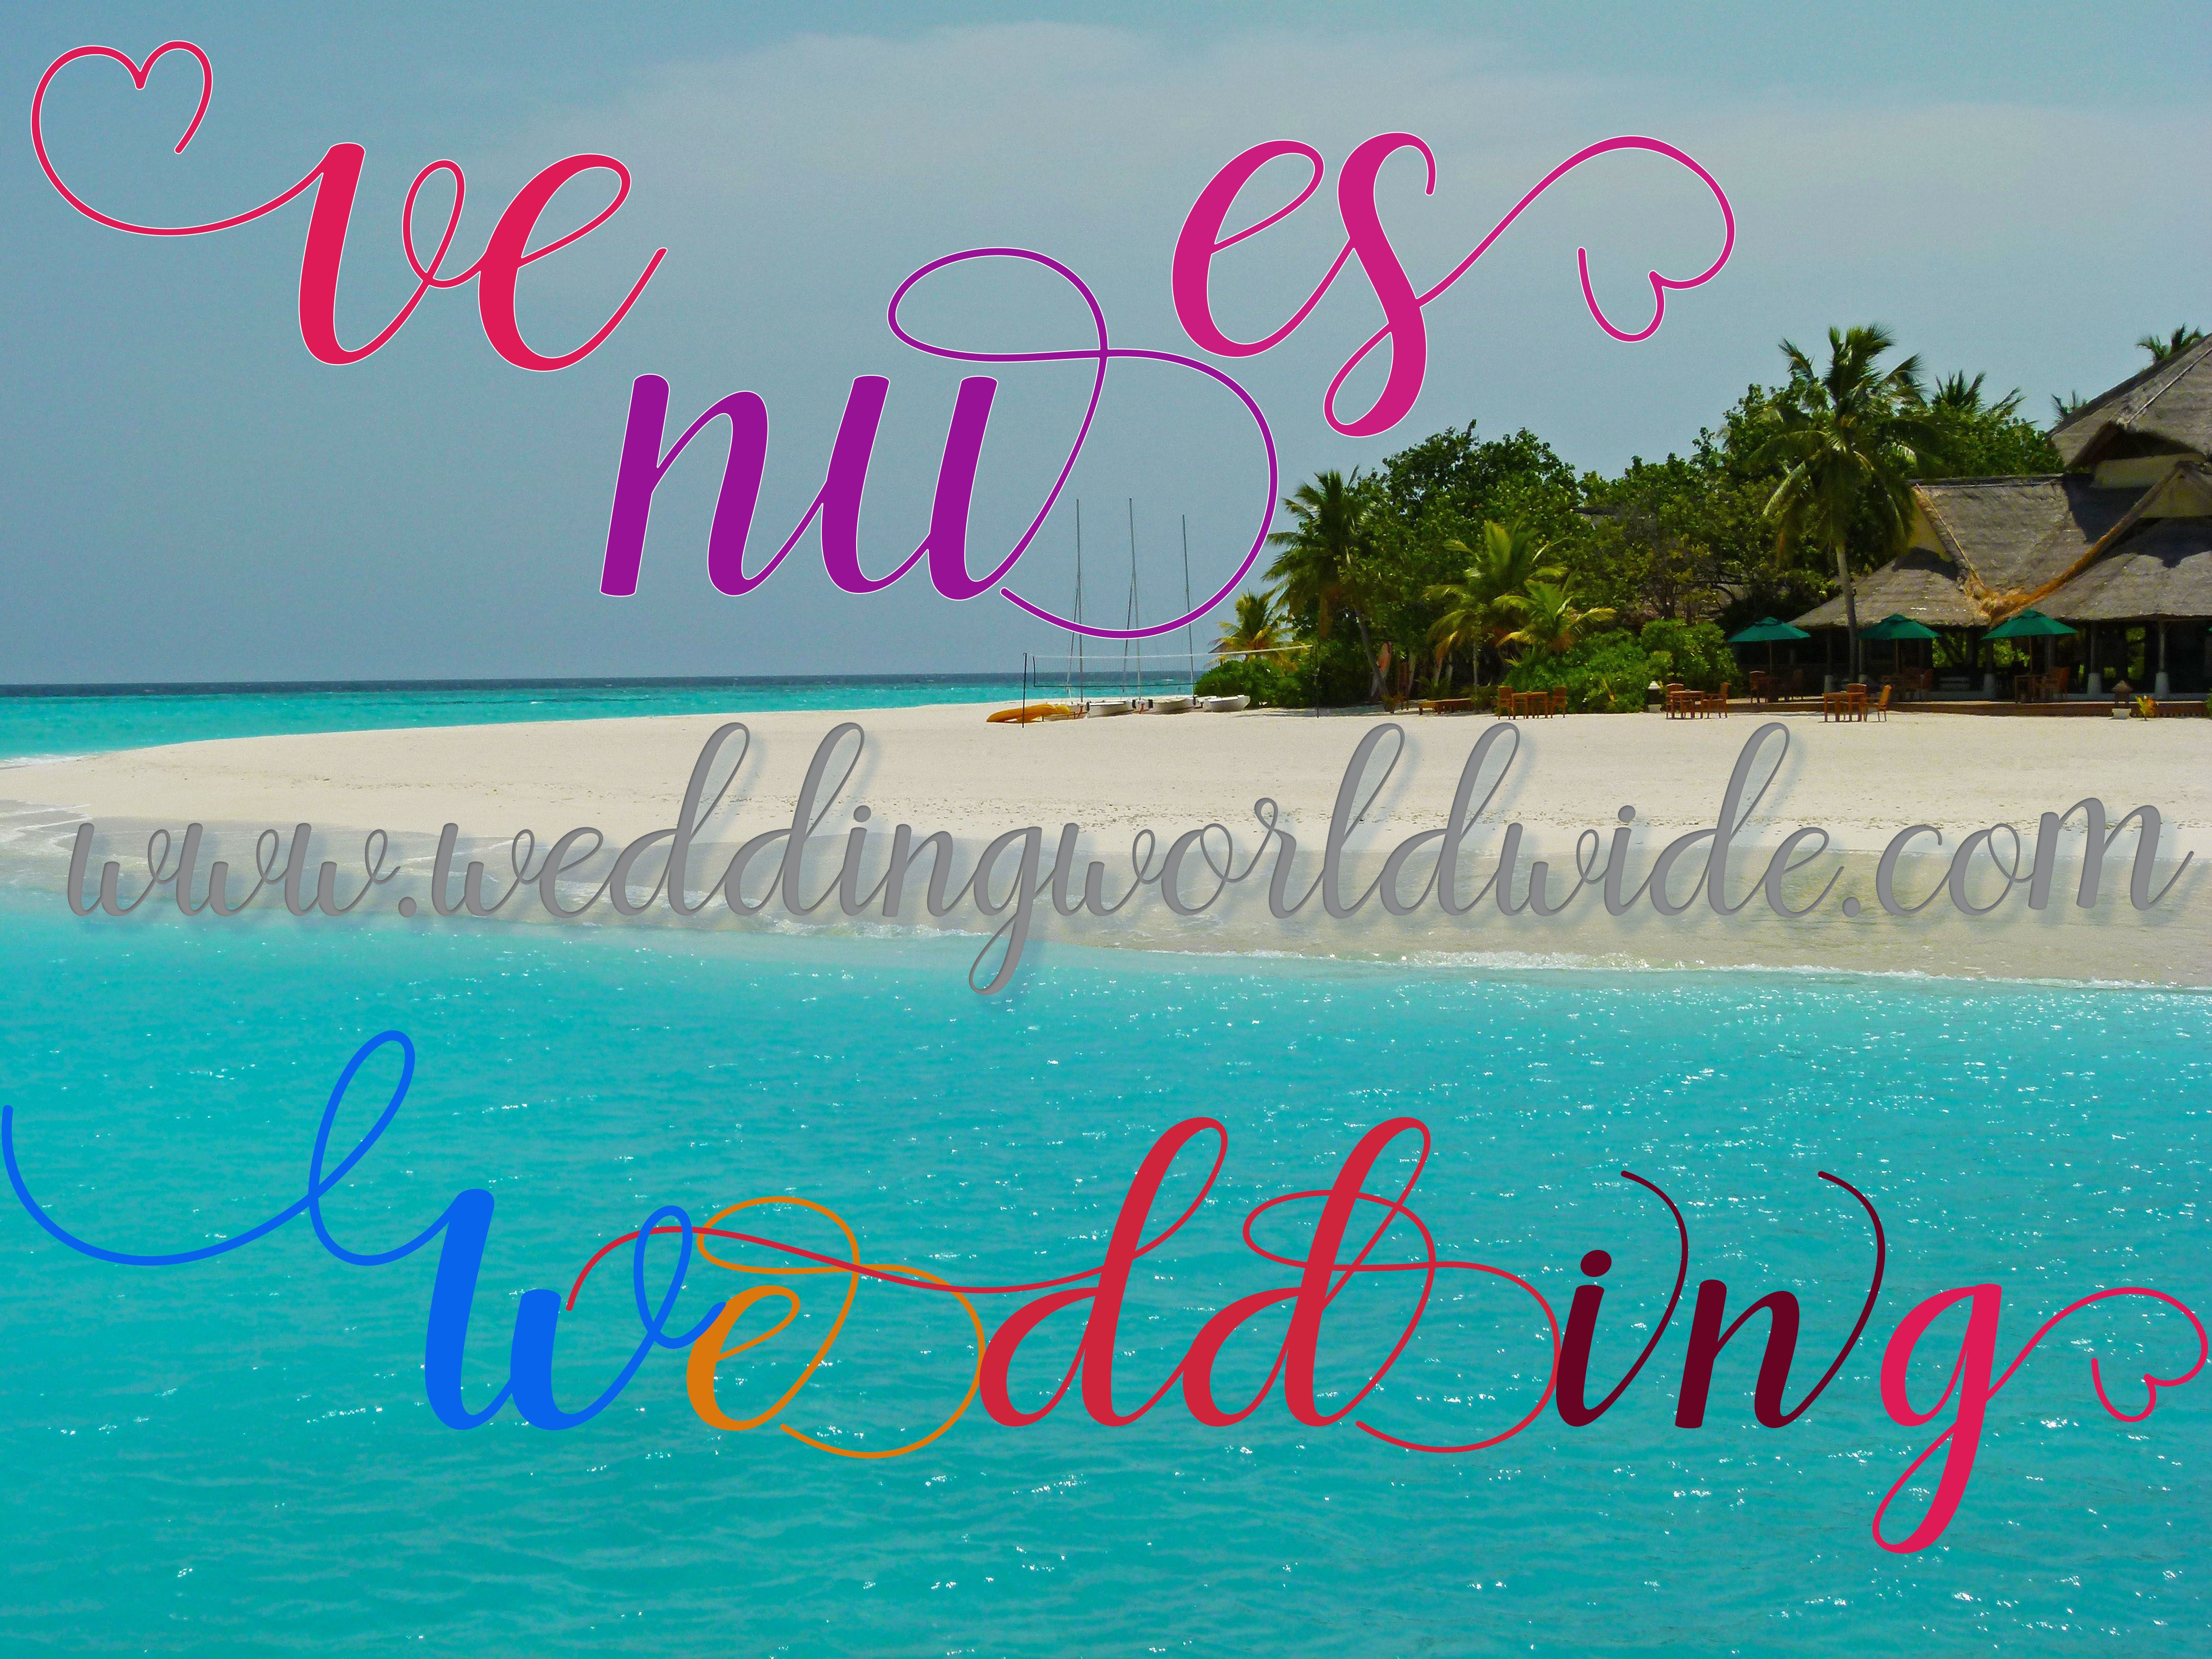 Are you planning your wedding? Choose an unforgettable venue.